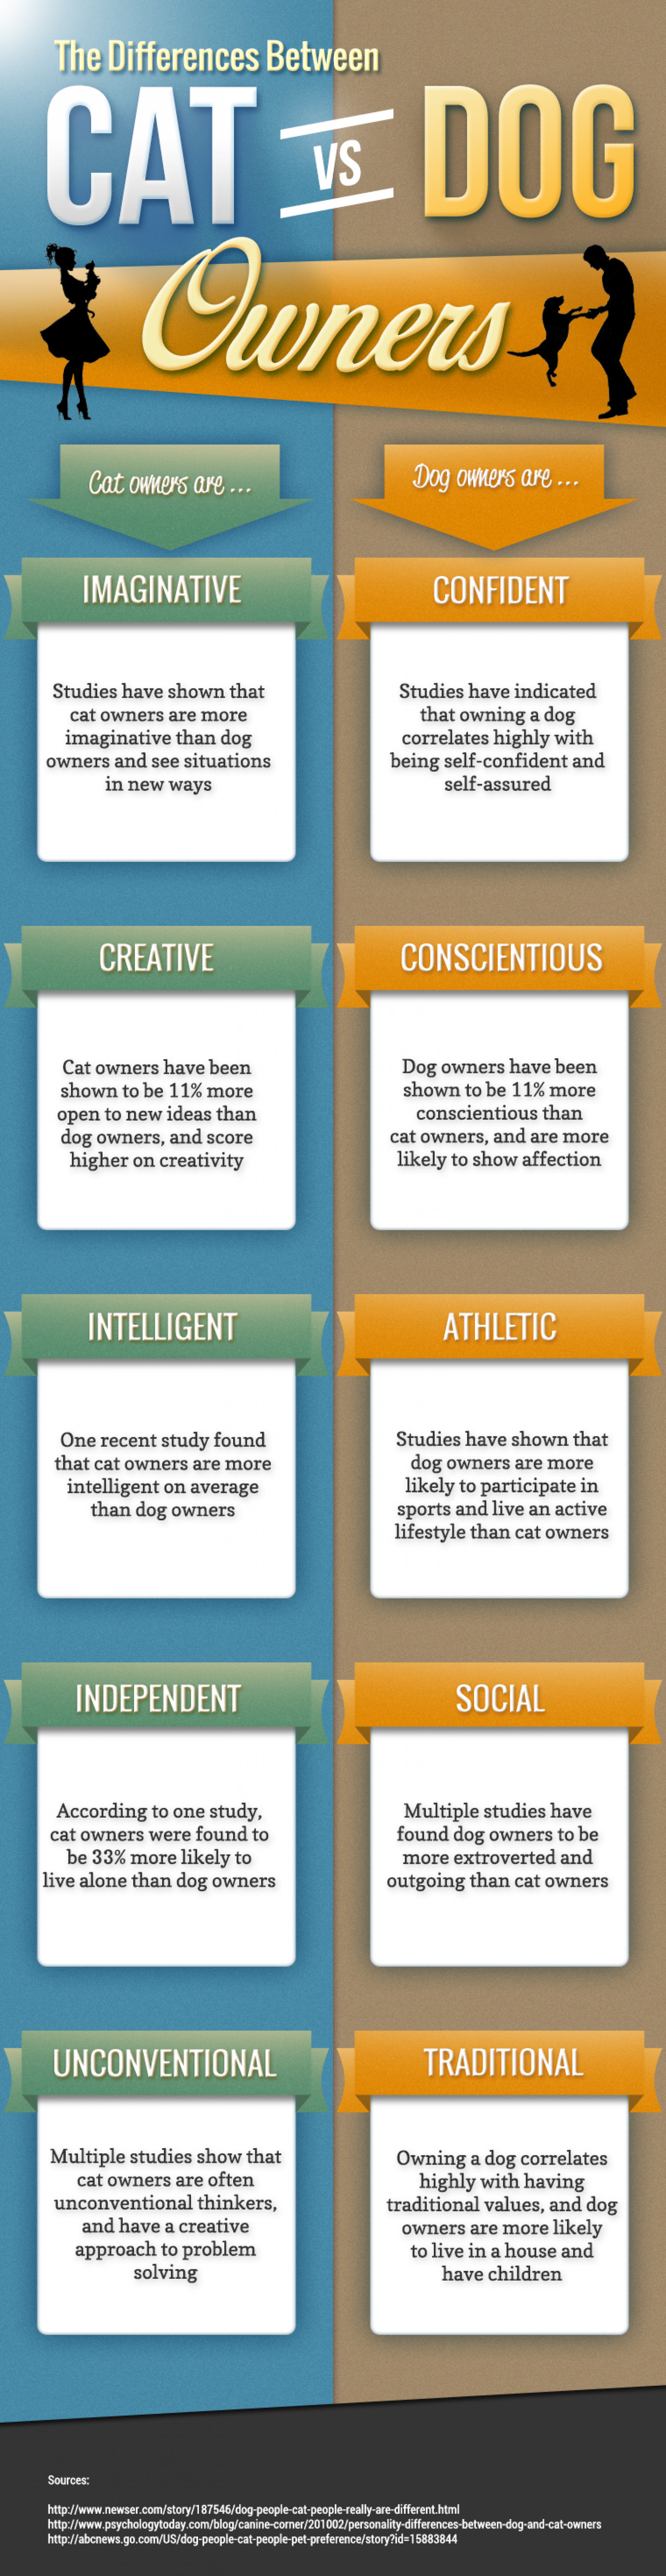 Differences Between Dog vs Cat Owners Infographic